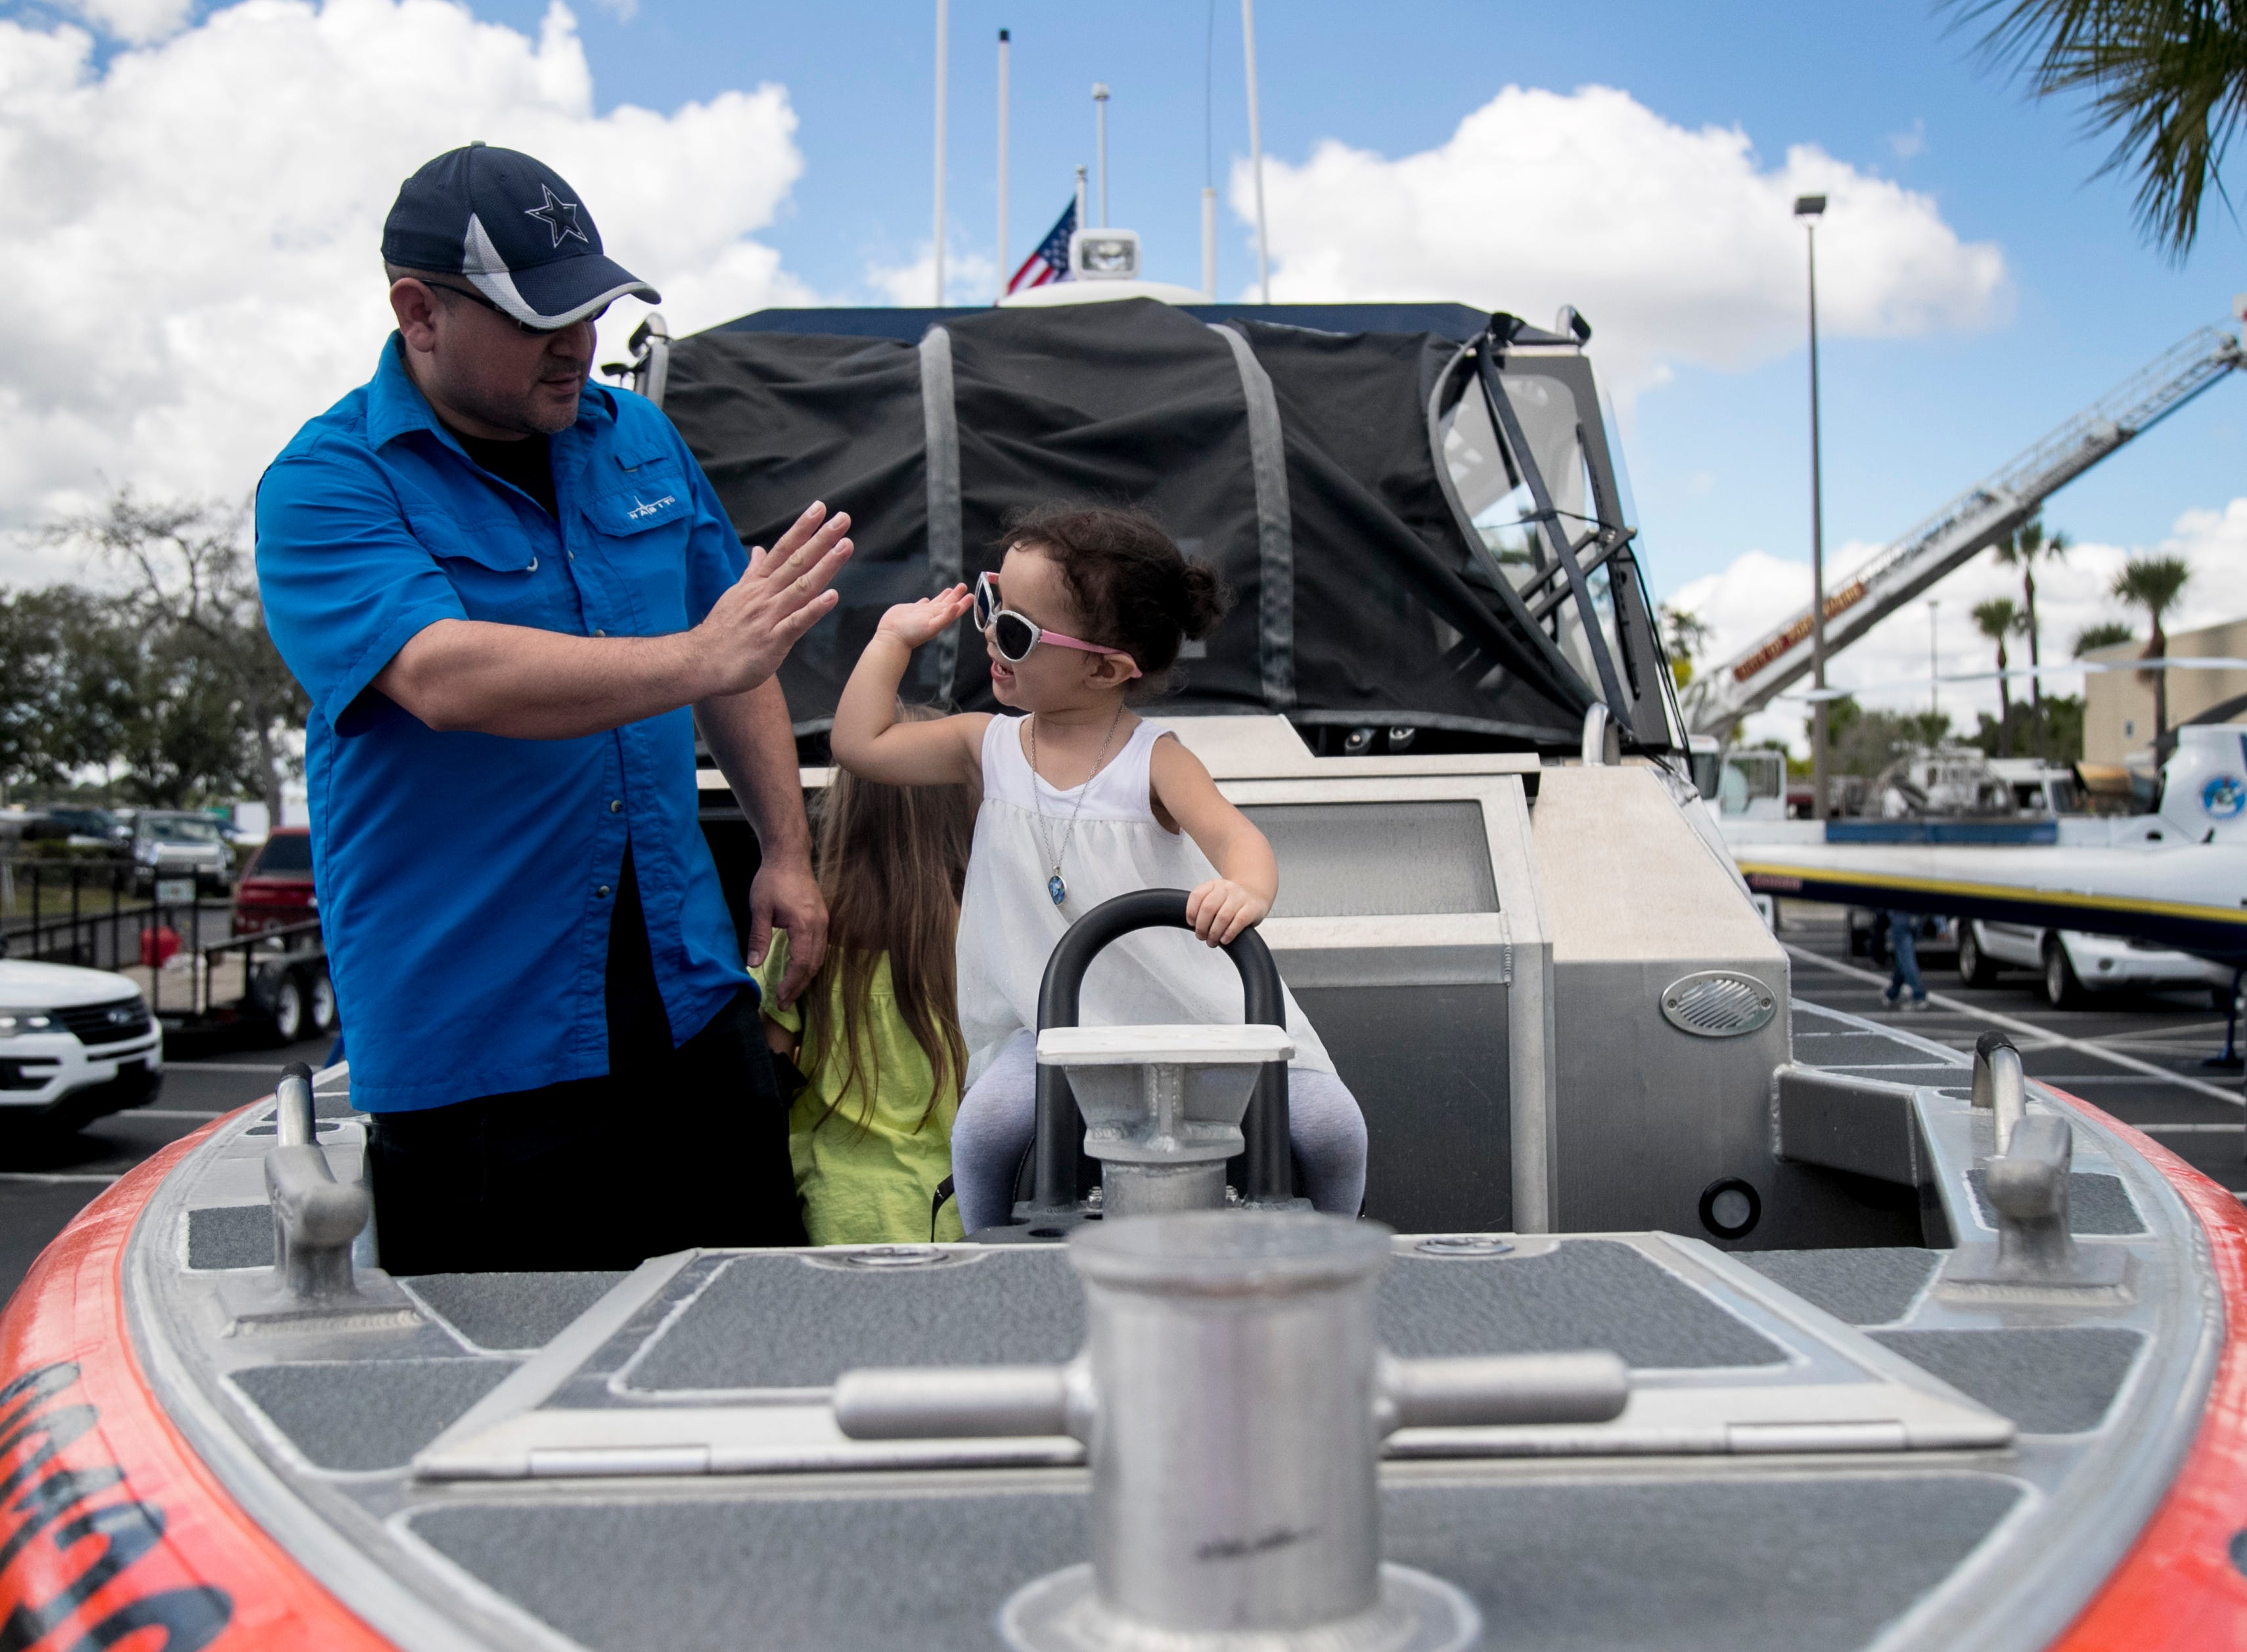 Isabella Dussan, 2, gives her dad Andre a high five aboard the Coast Guard boat on display at the STEMtastic Day of Discovery on Saturday, Feb. 9, 2019, in Fort Myers.